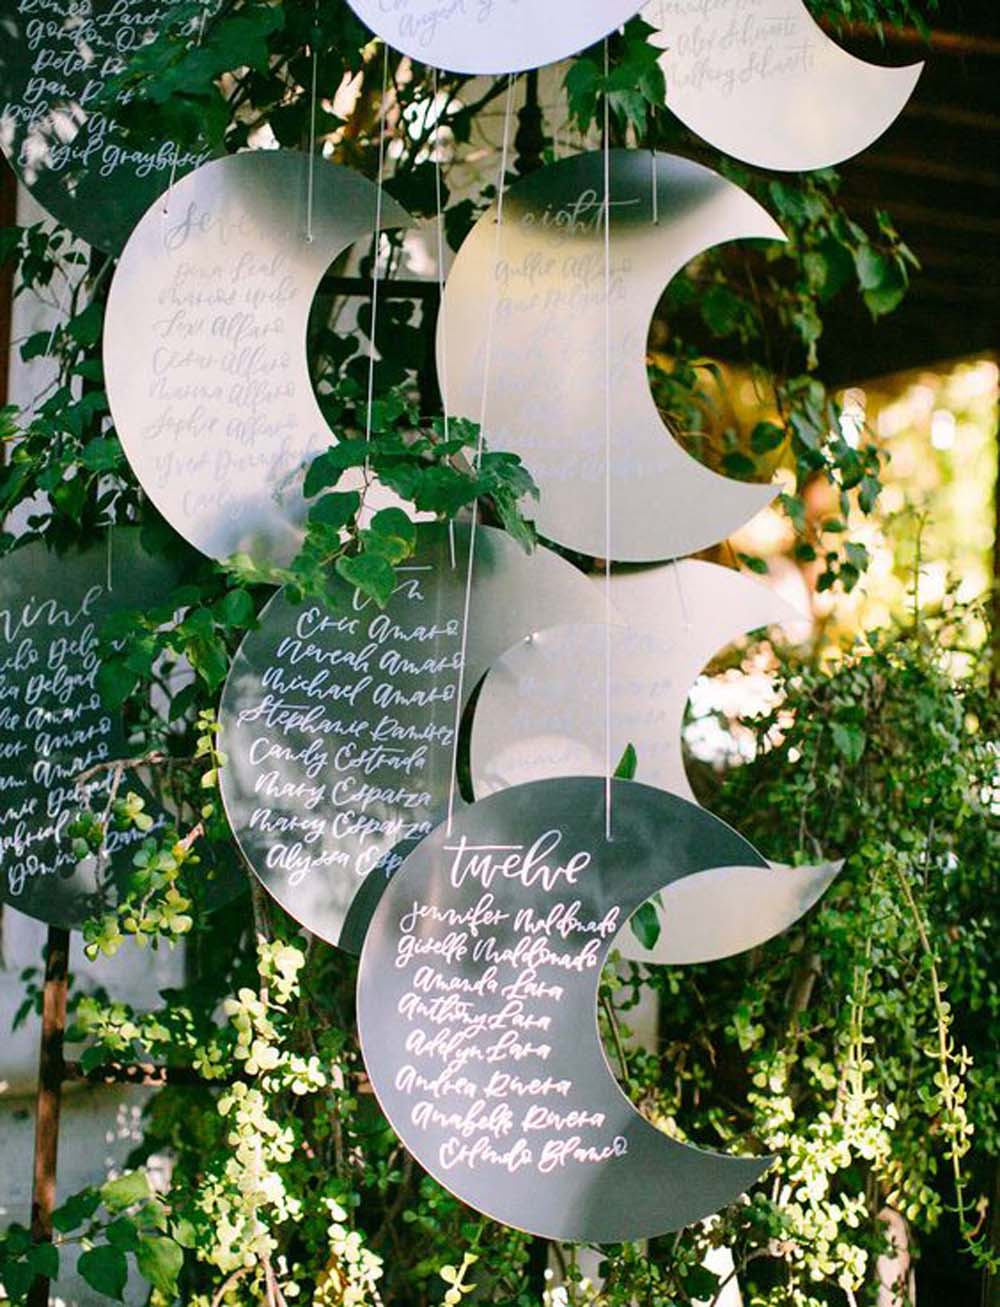 Unique moon-shaped seating plan display ideas.